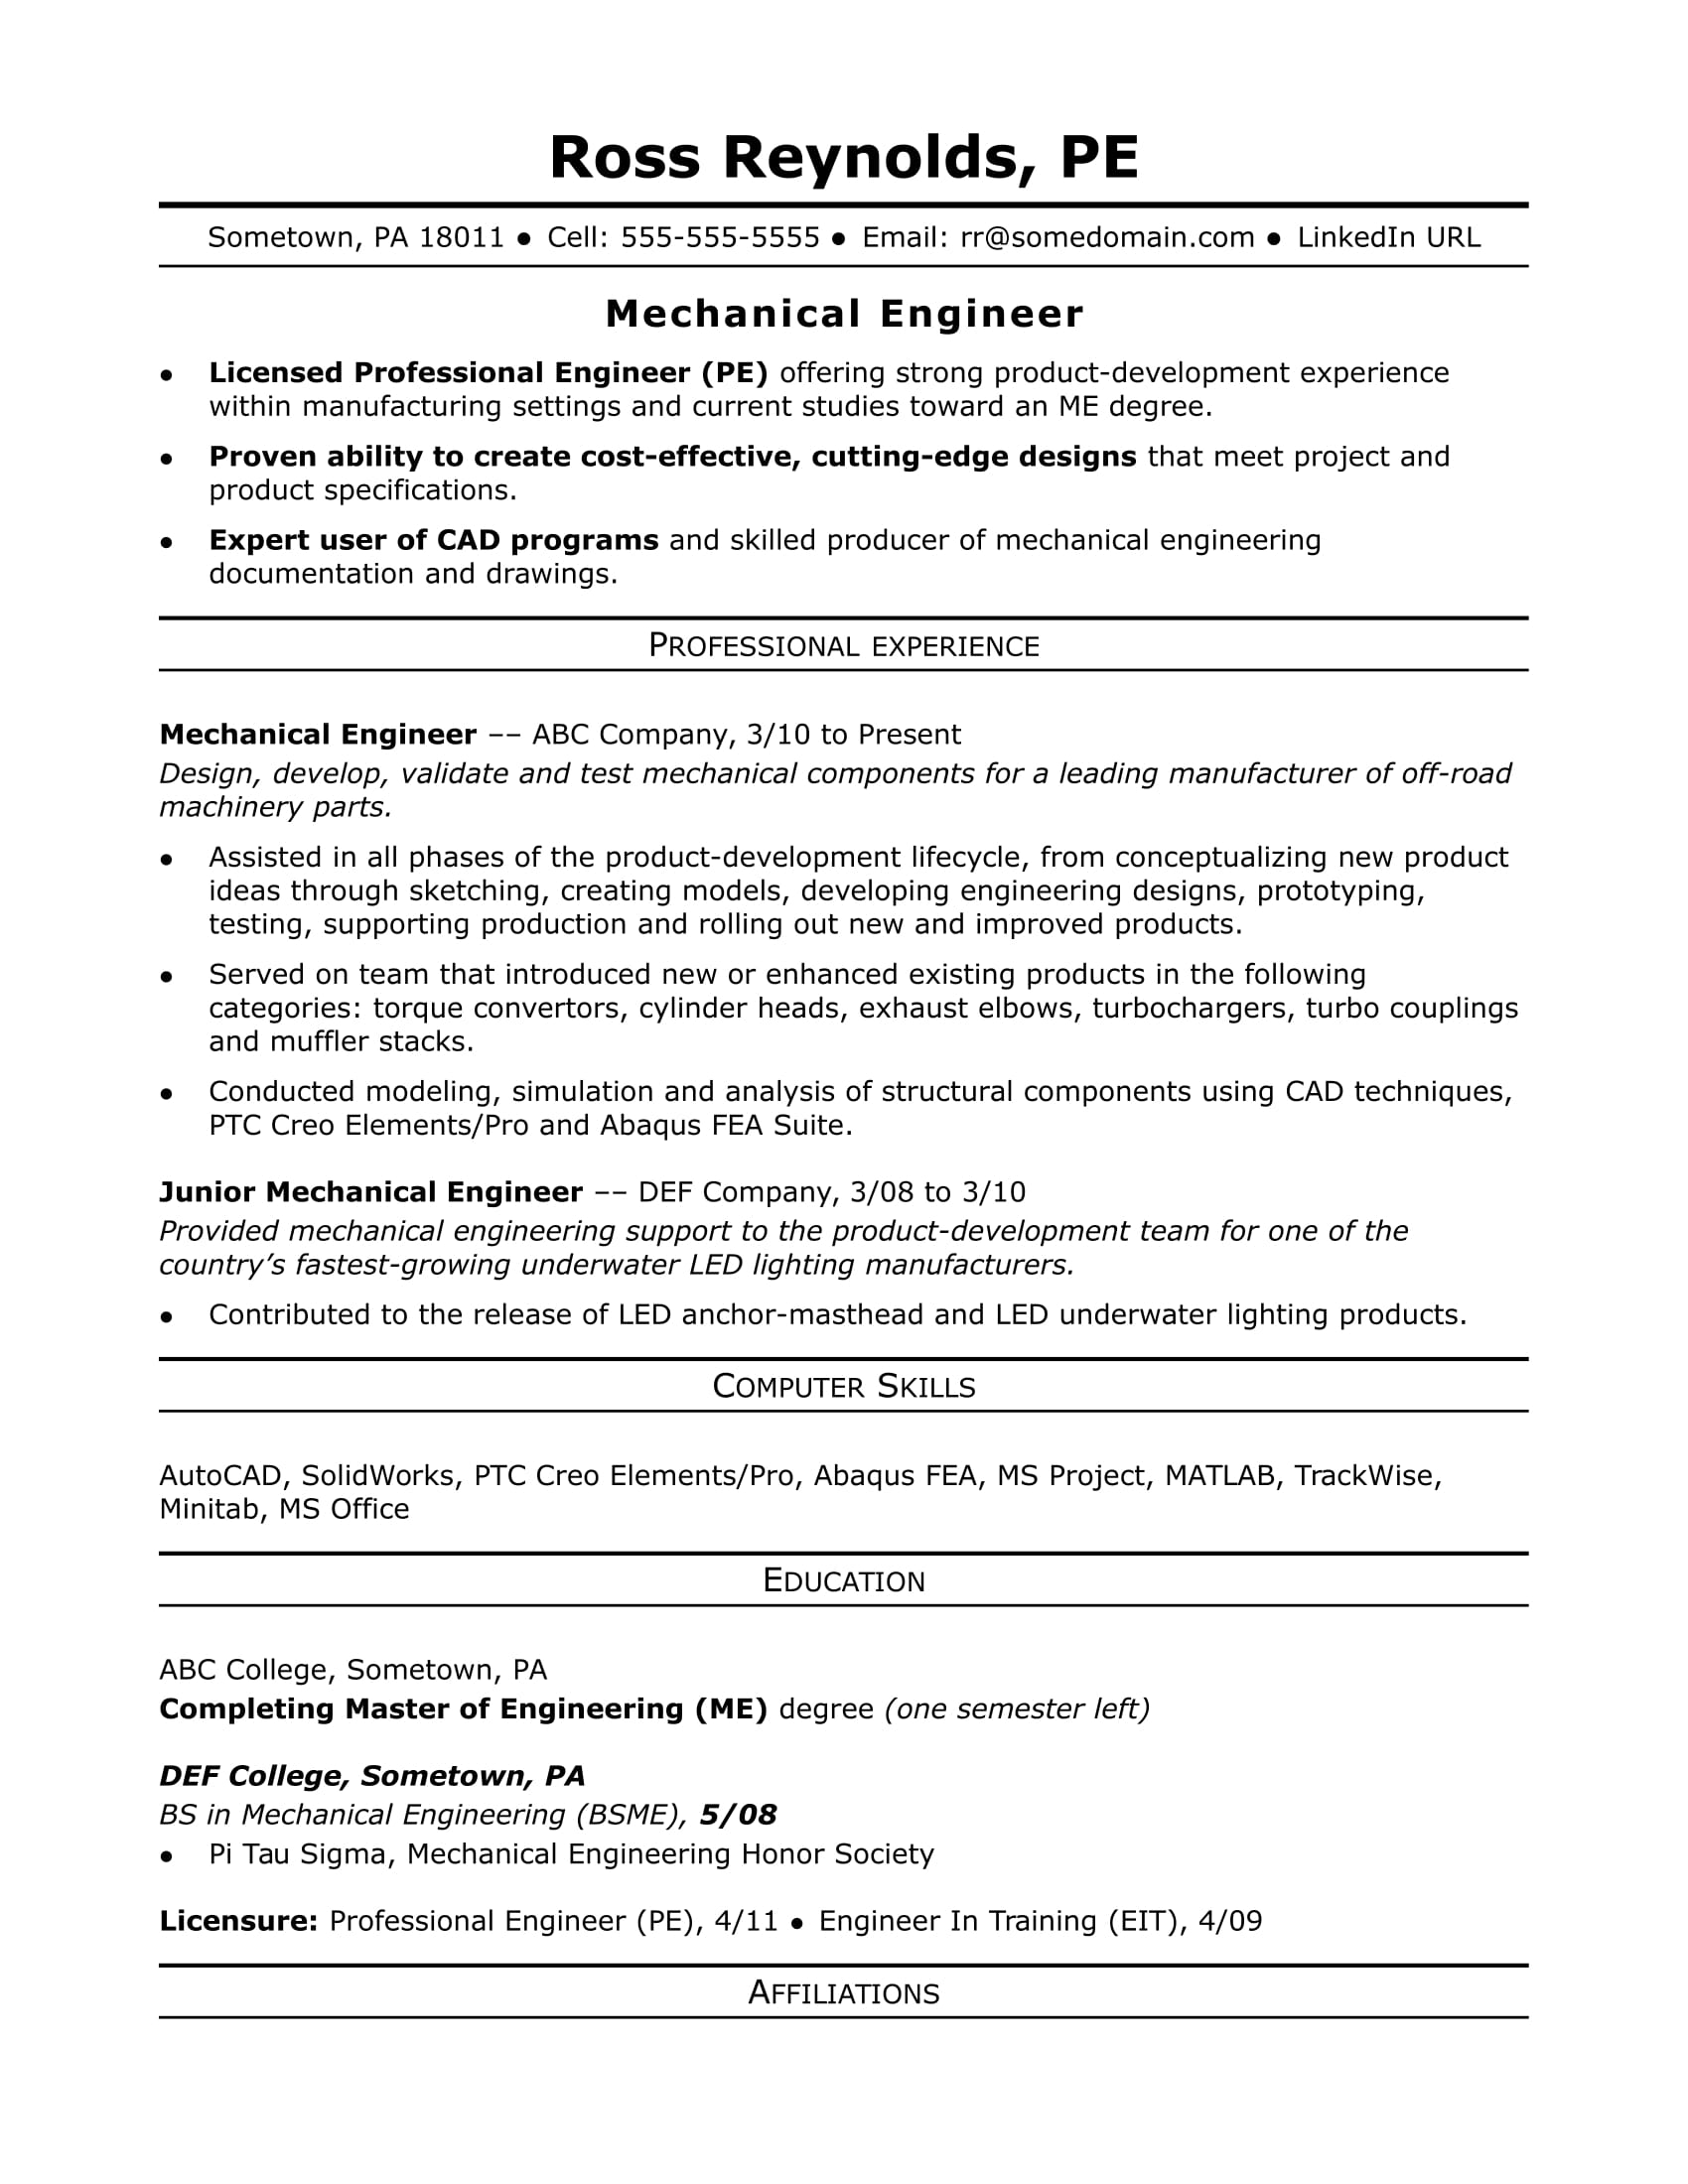 Wonderful Sample Resume For A Midlevel Mechanical Engineer With Engineering Resumes